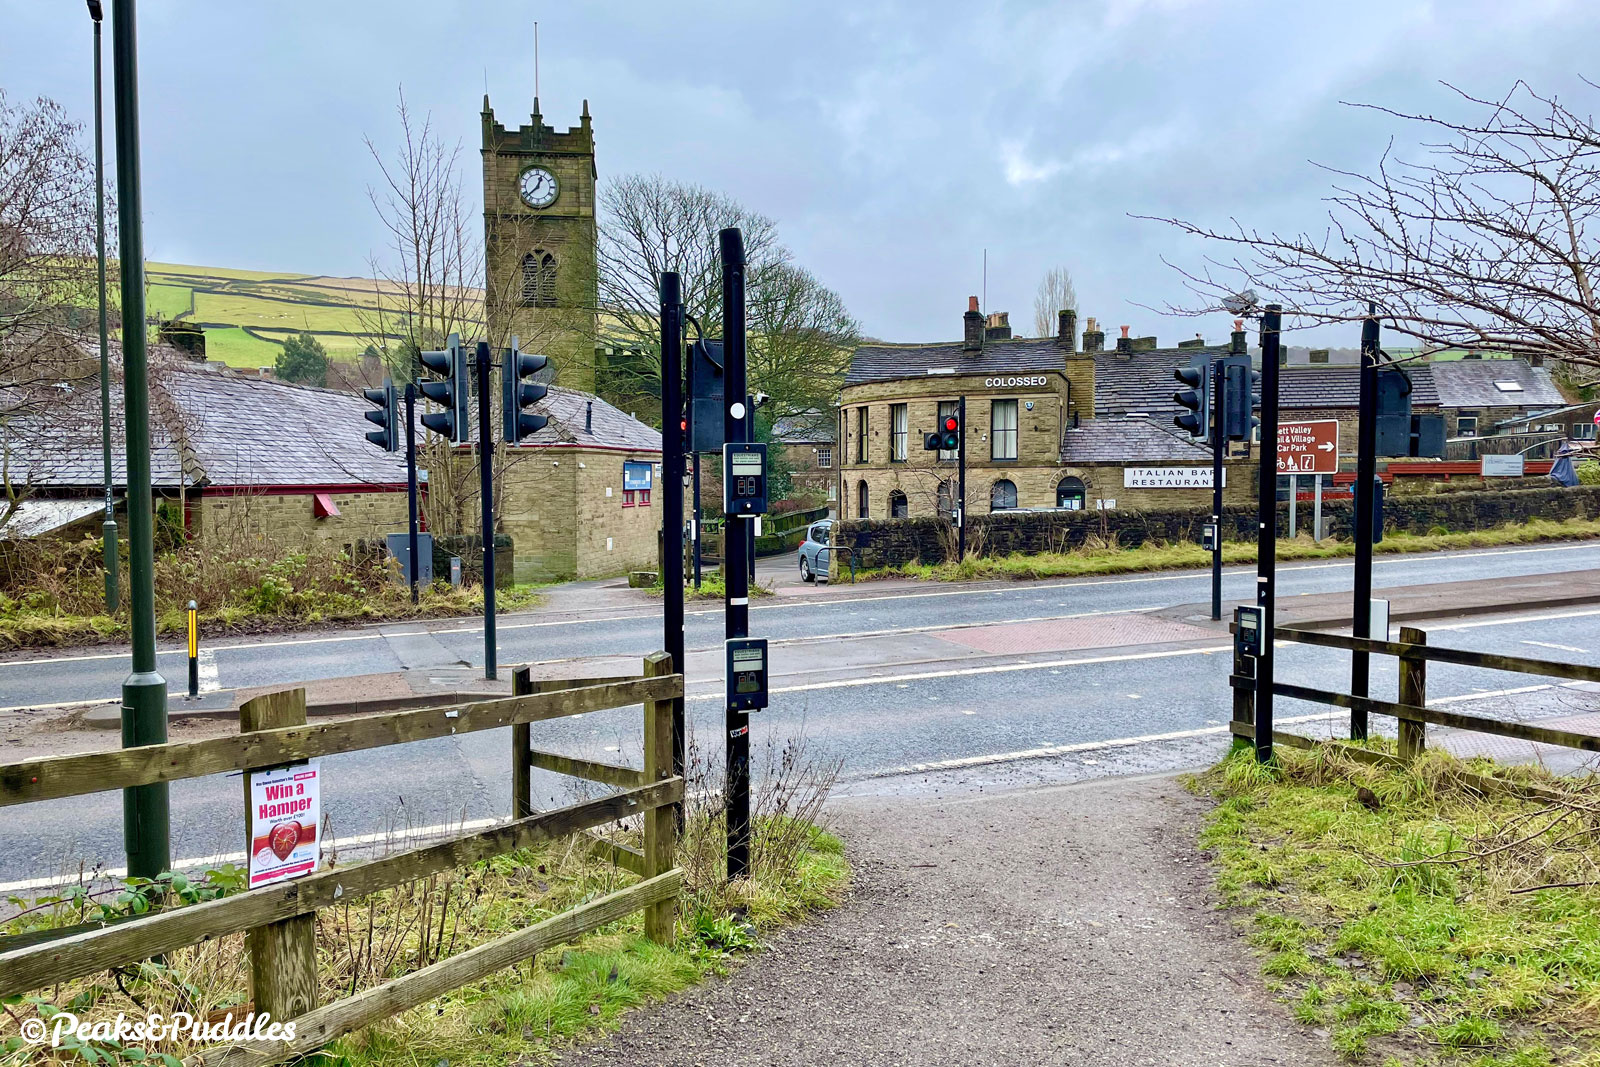 At the A624, a Pegasus crossing gives easy access into Hayfield village, part of the Pennine Bridleway.